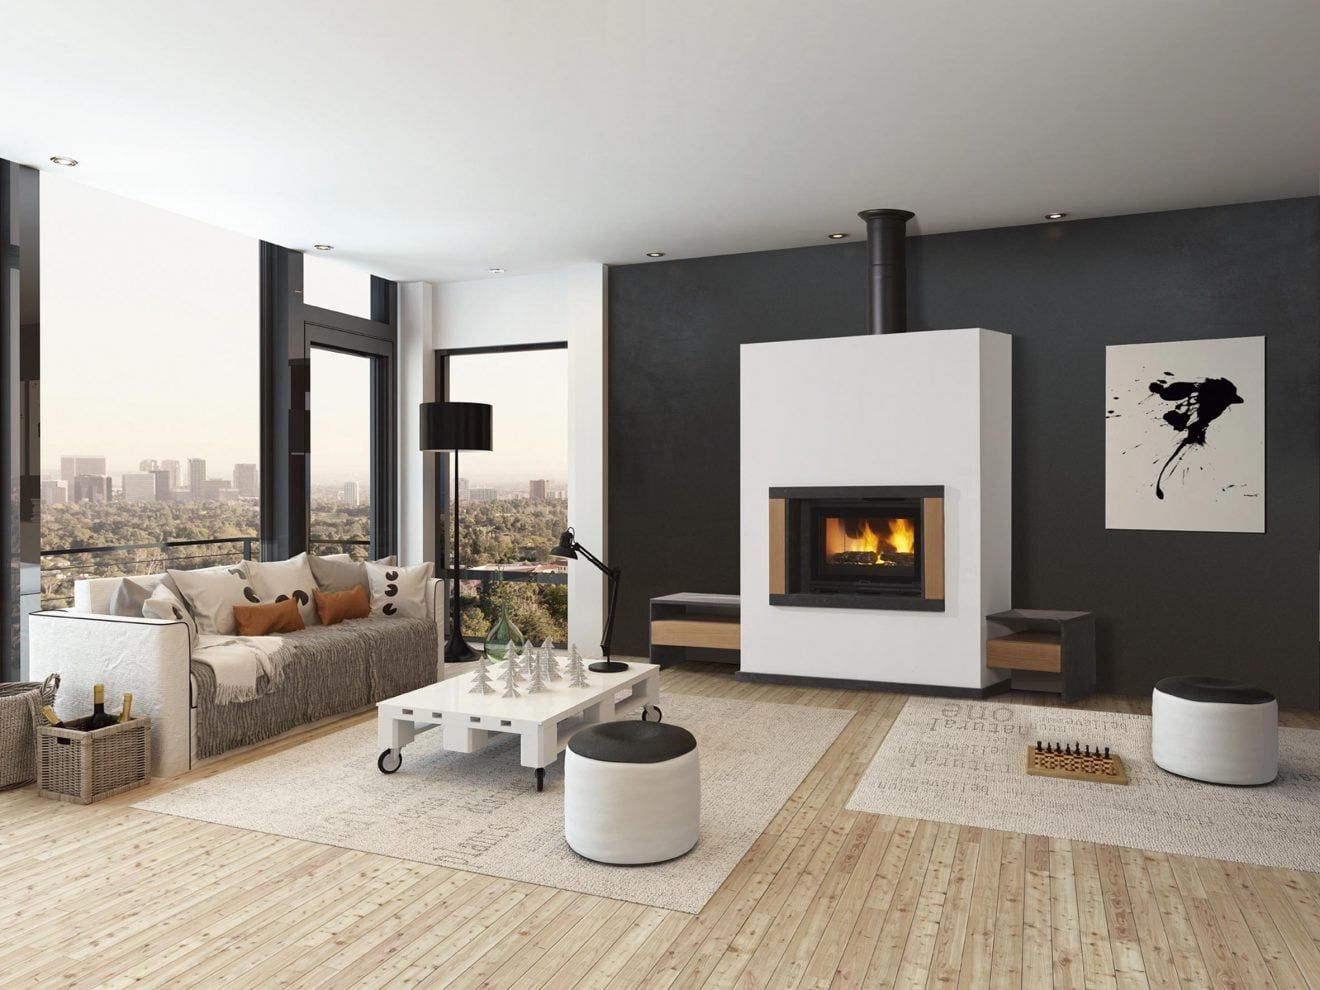 Radiante 873 Modern Living Room Fireplace Fireplace Design